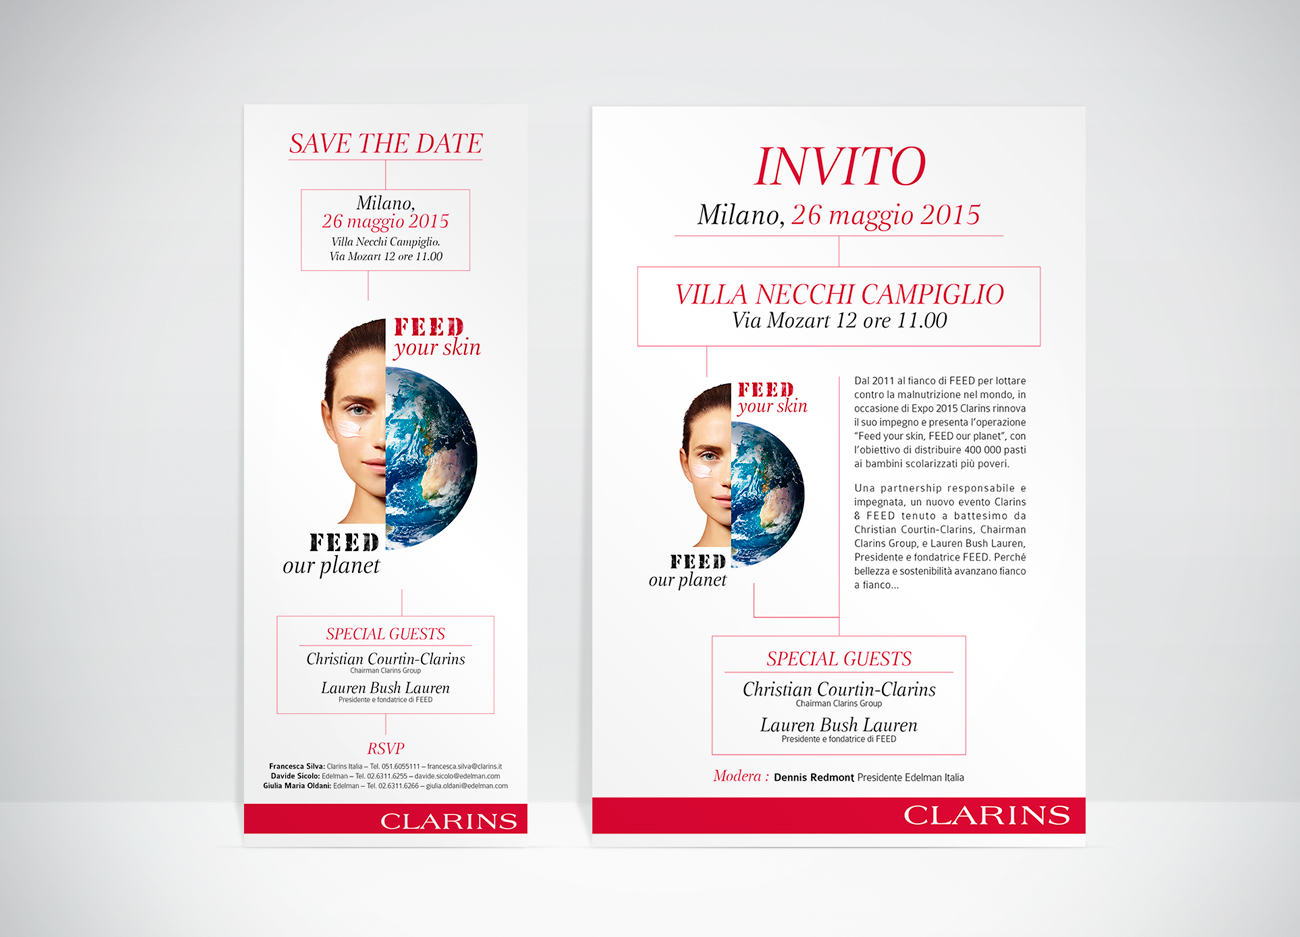 CLARINS-MILAN-INVITATION